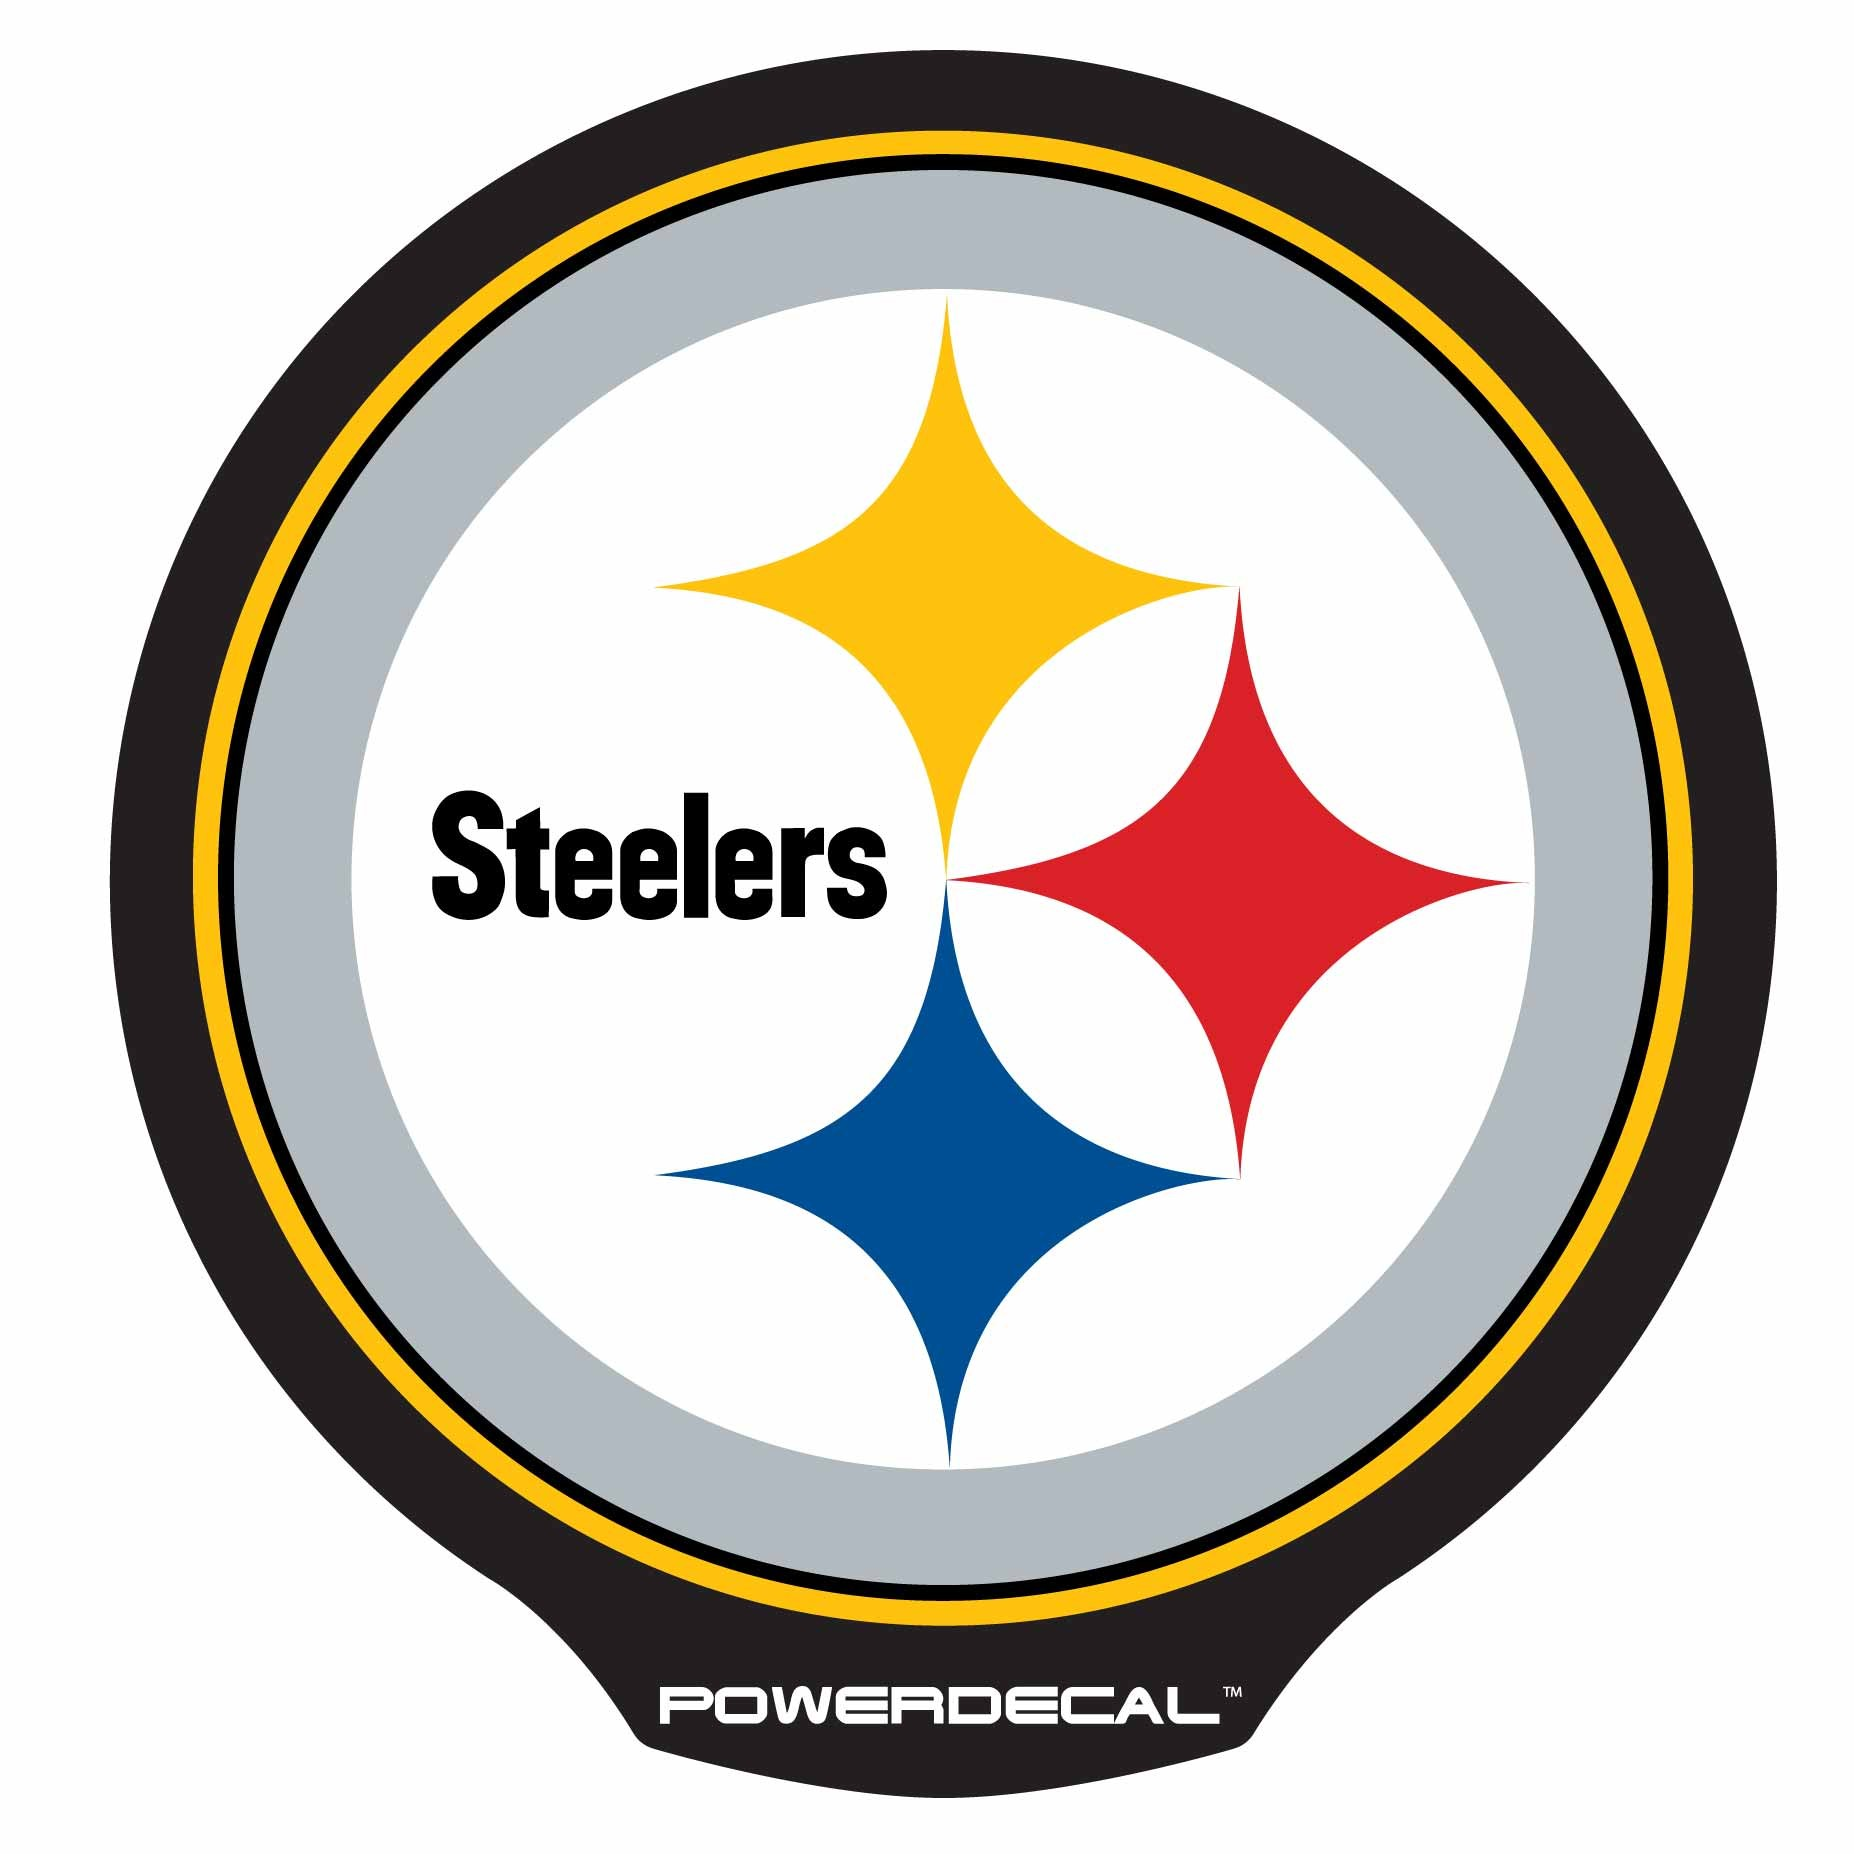 Steelers football images clipart clipart library download Free Steelers Cliparts, Download Free Clip Art, Free Clip ... clipart library download